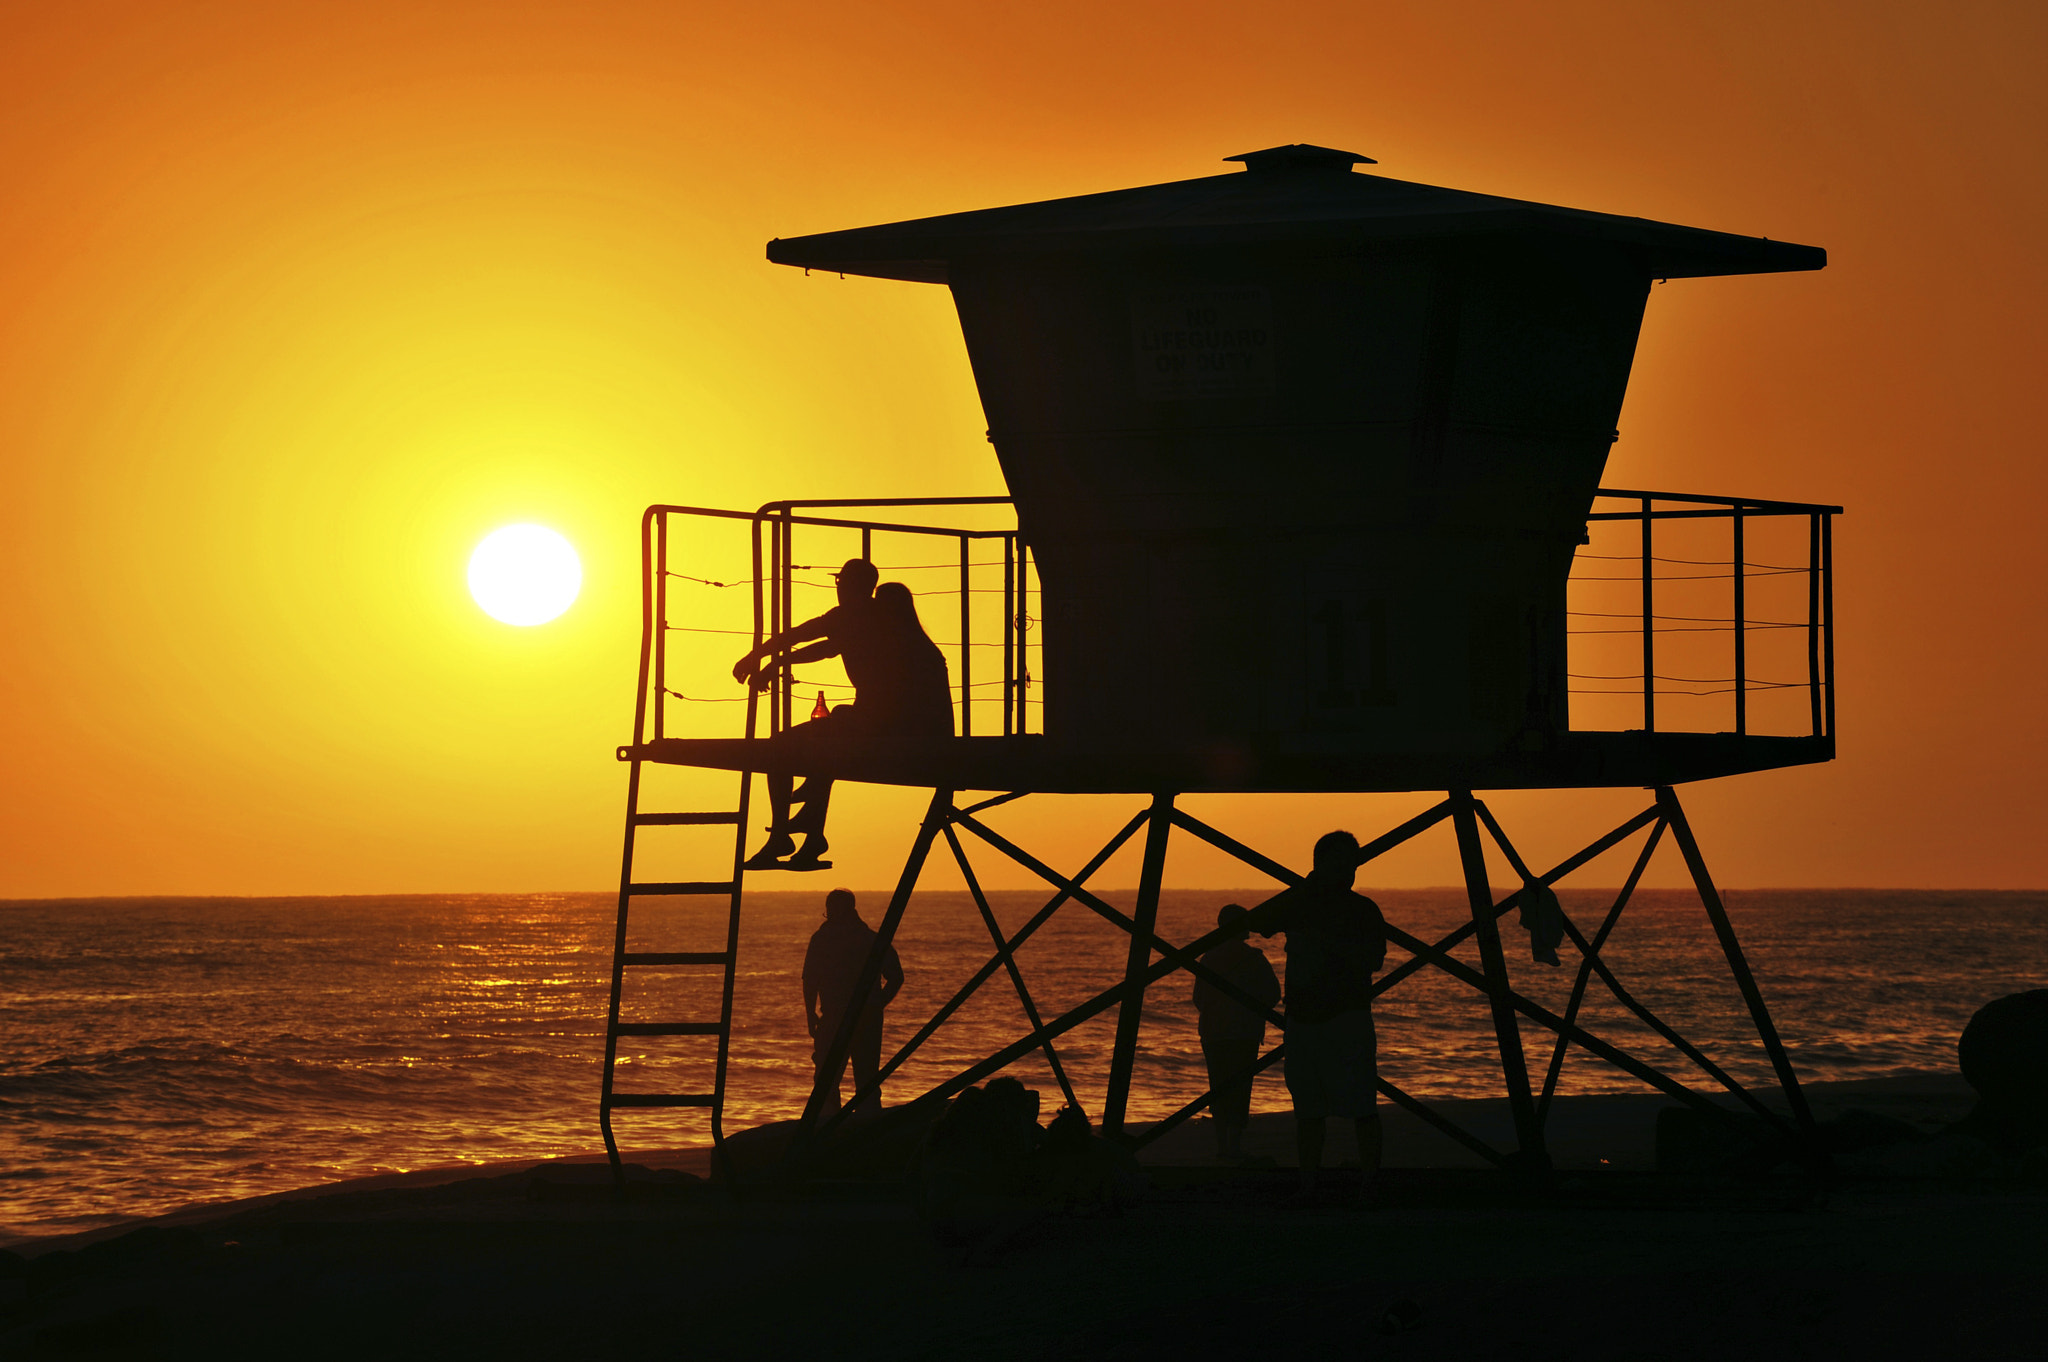 Photograph Sunset in Oceanside - June 20, 2013 by Rich Cruse on 500px